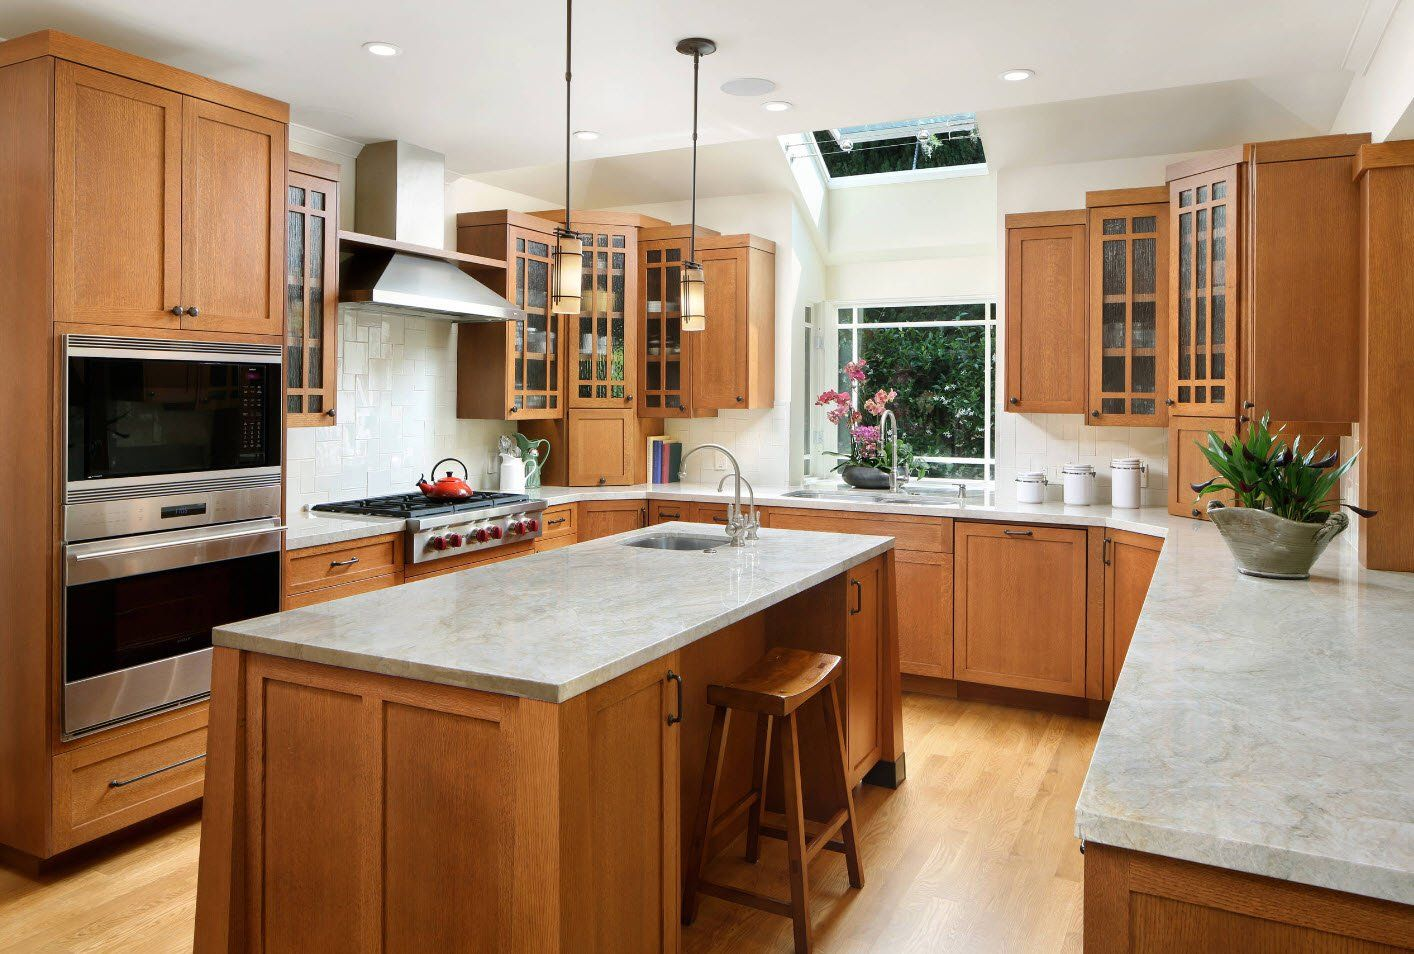 Wooden kitchen finishing and furniture